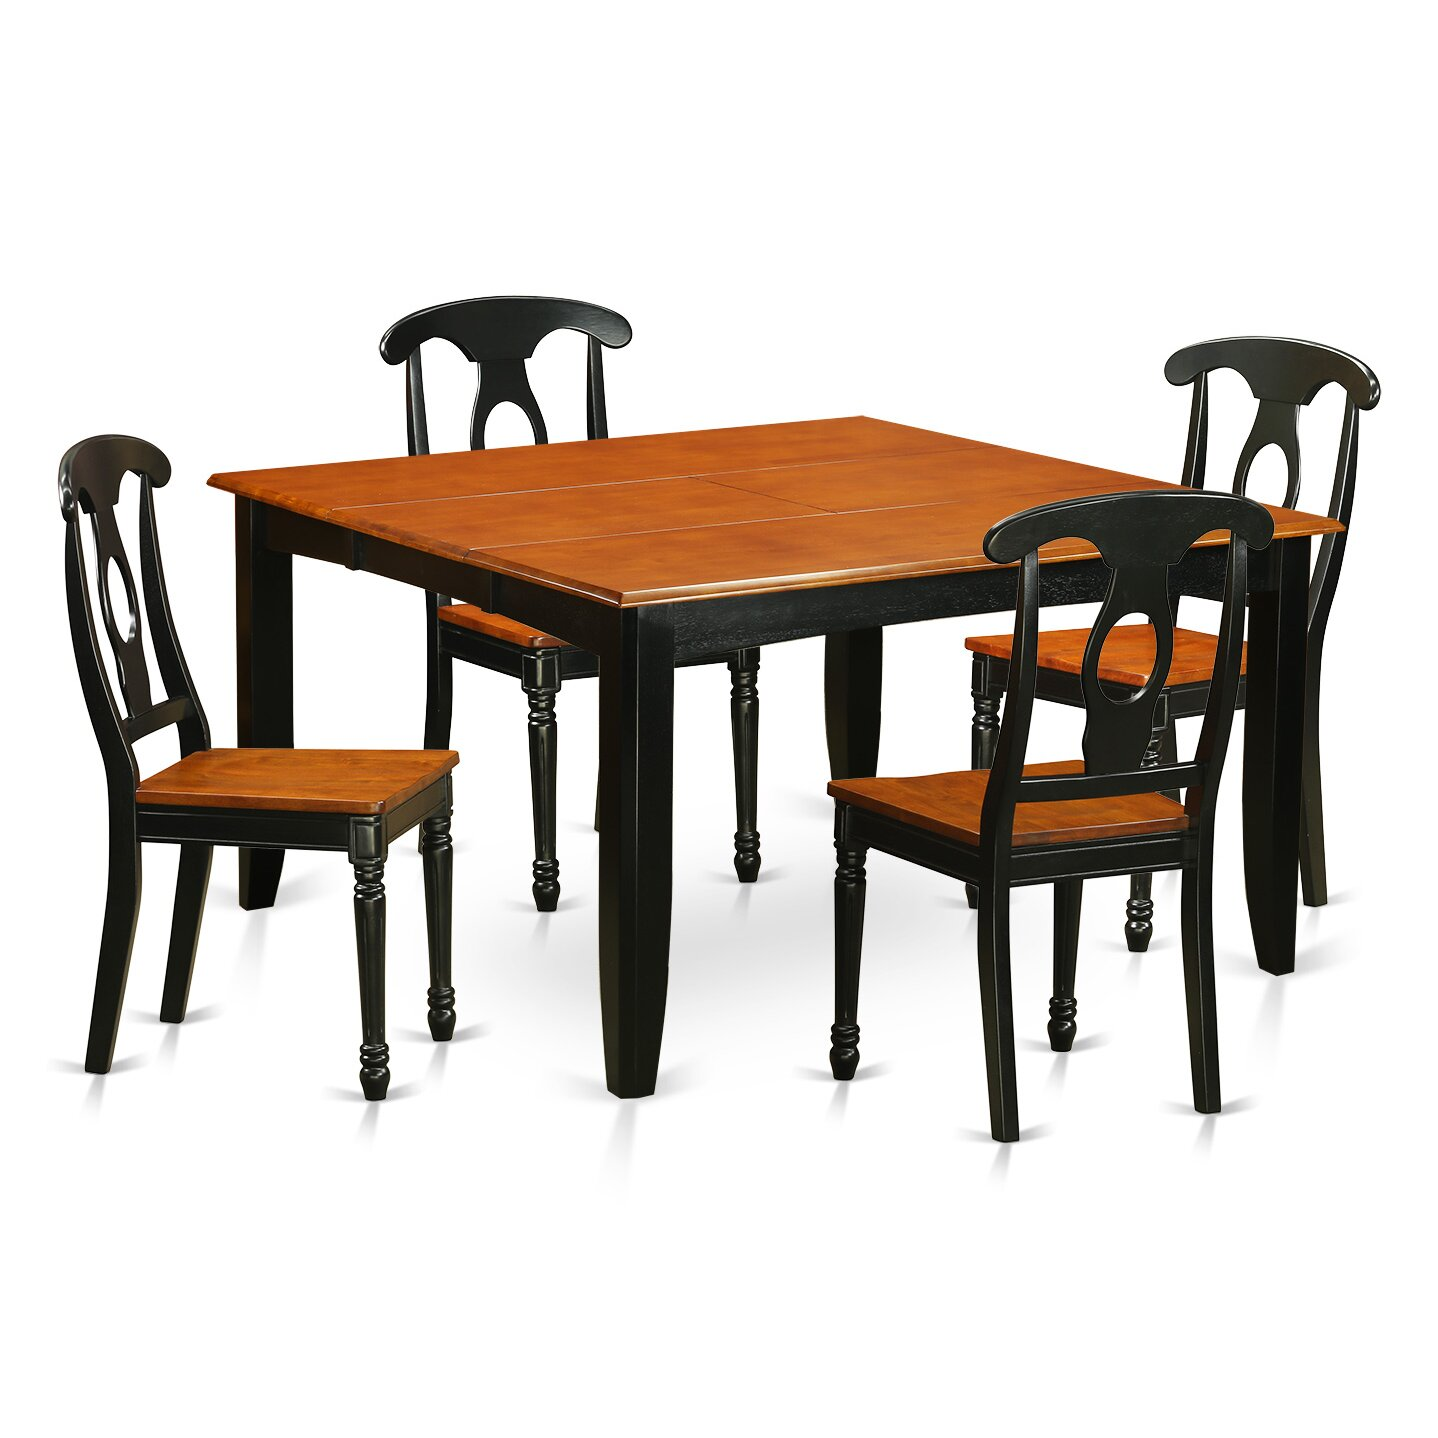 East west parfait 5 piece dining set reviews wayfair for Dining room sets 4 chairs